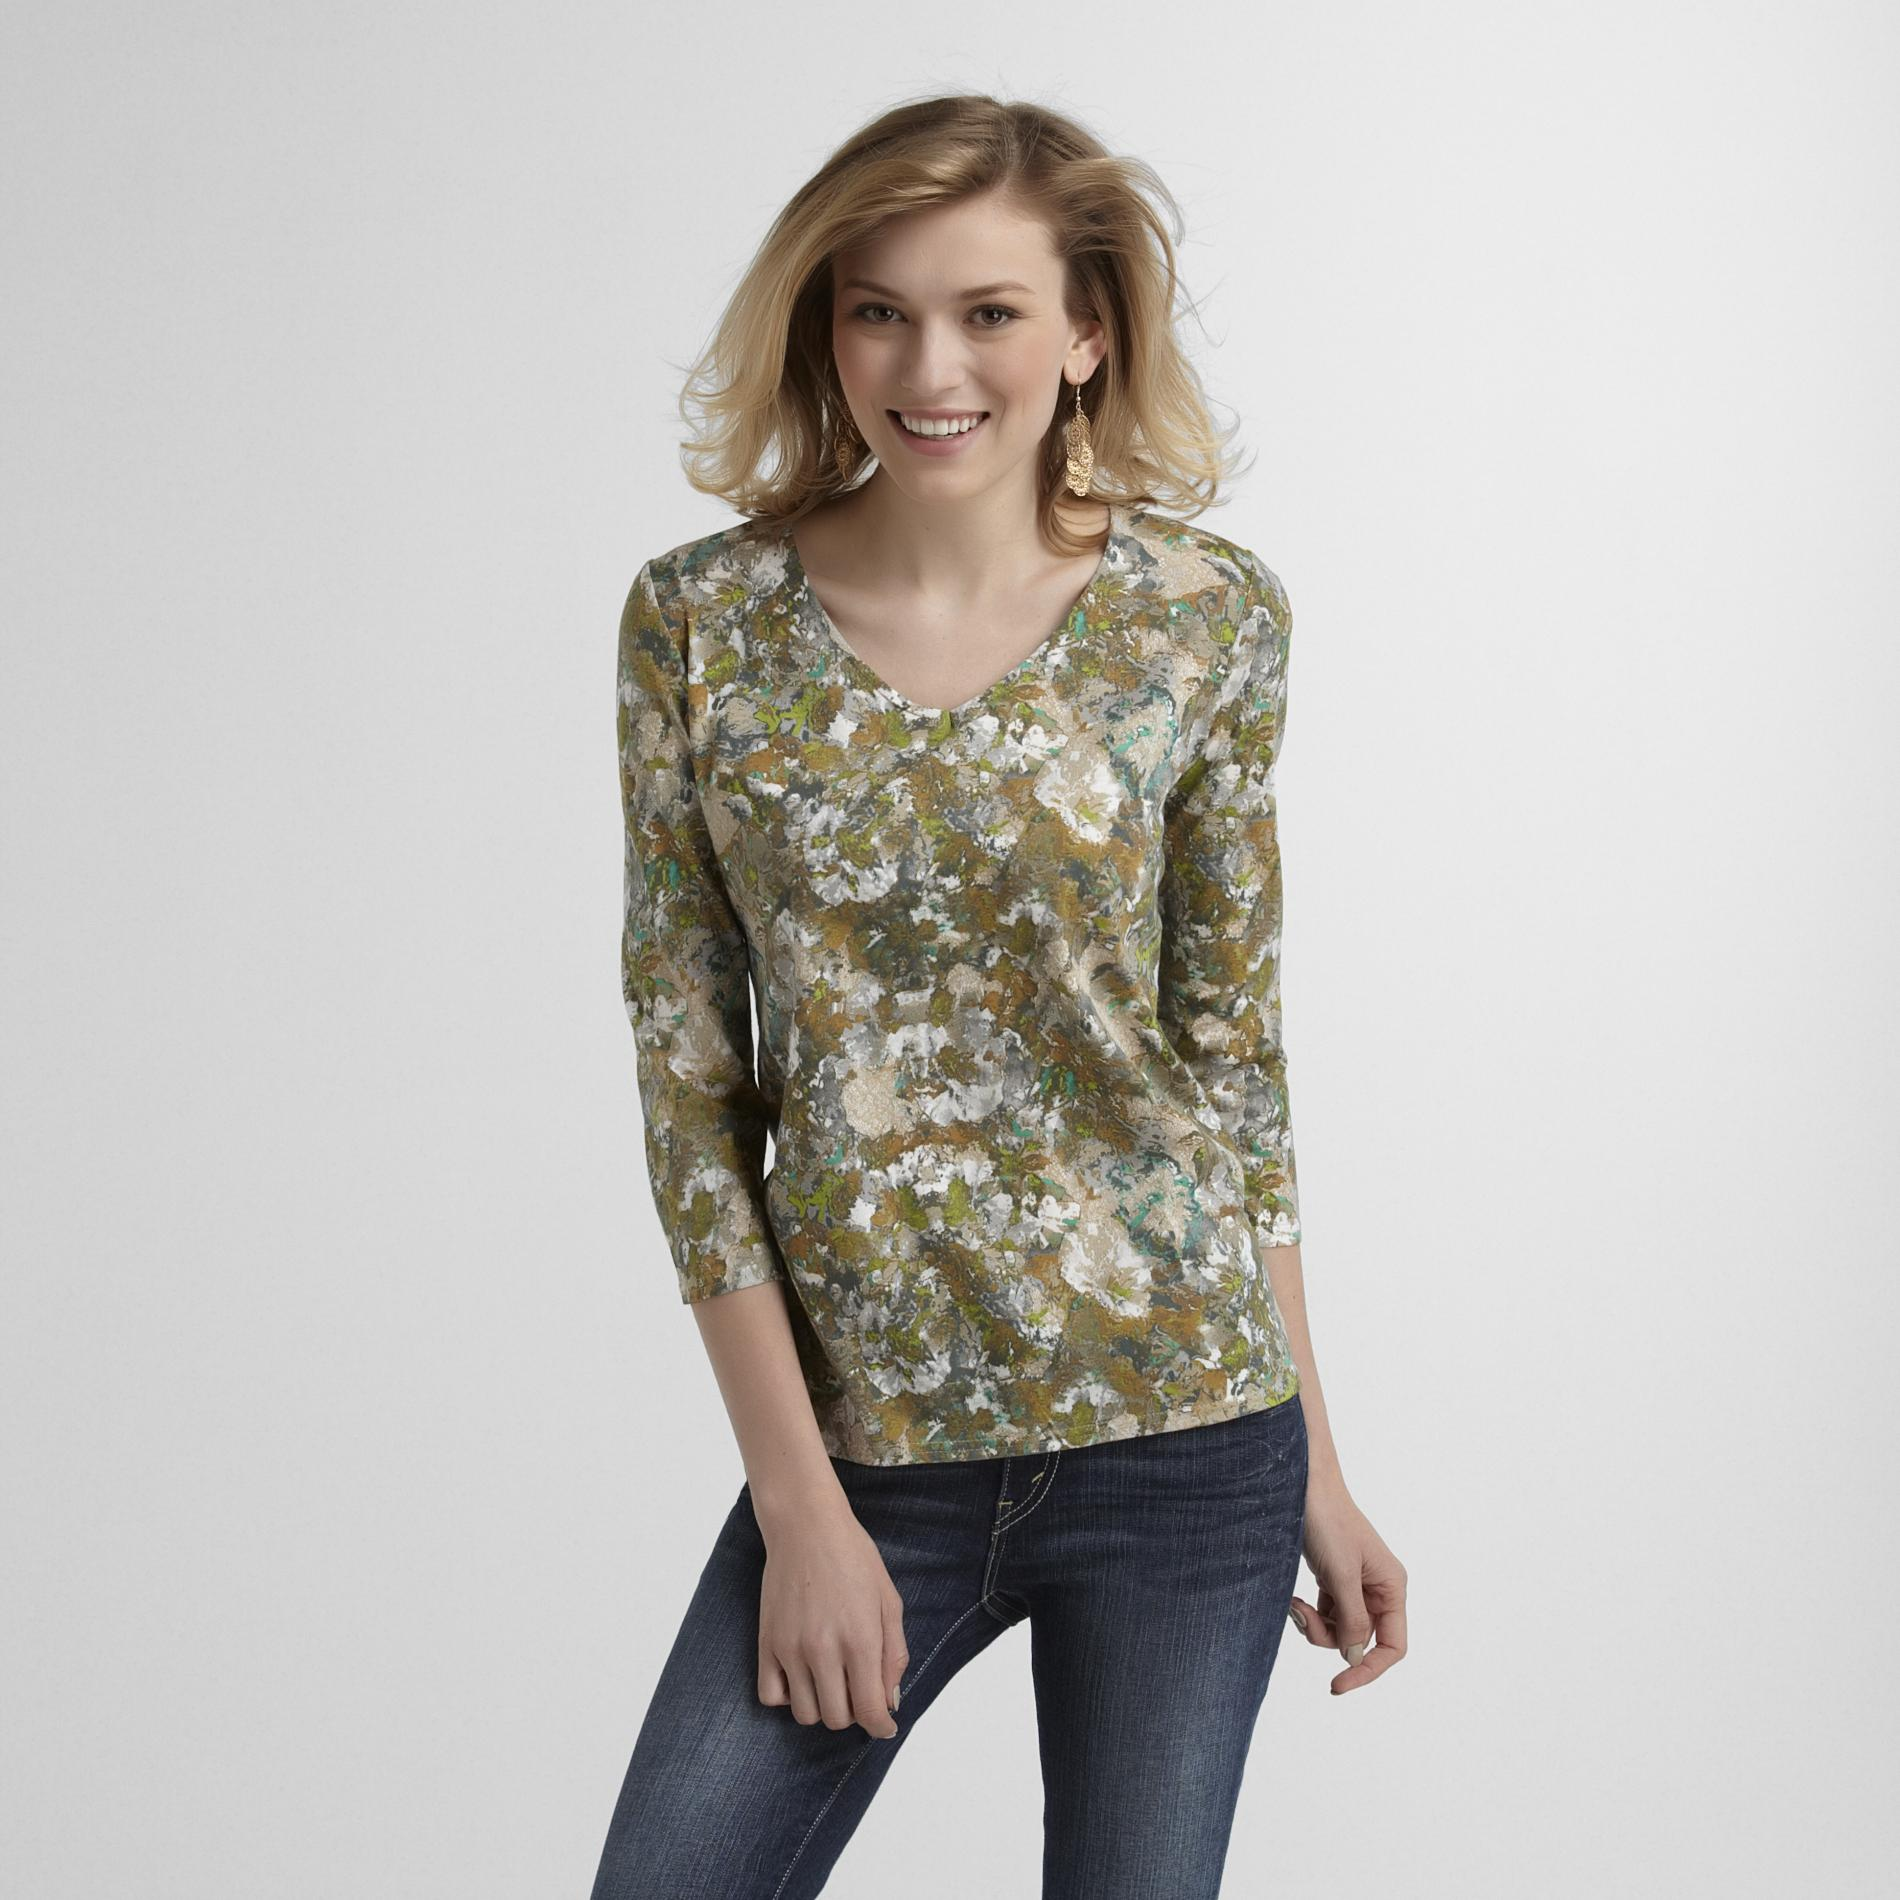 Women's V-Neck T-Shirt - Floral